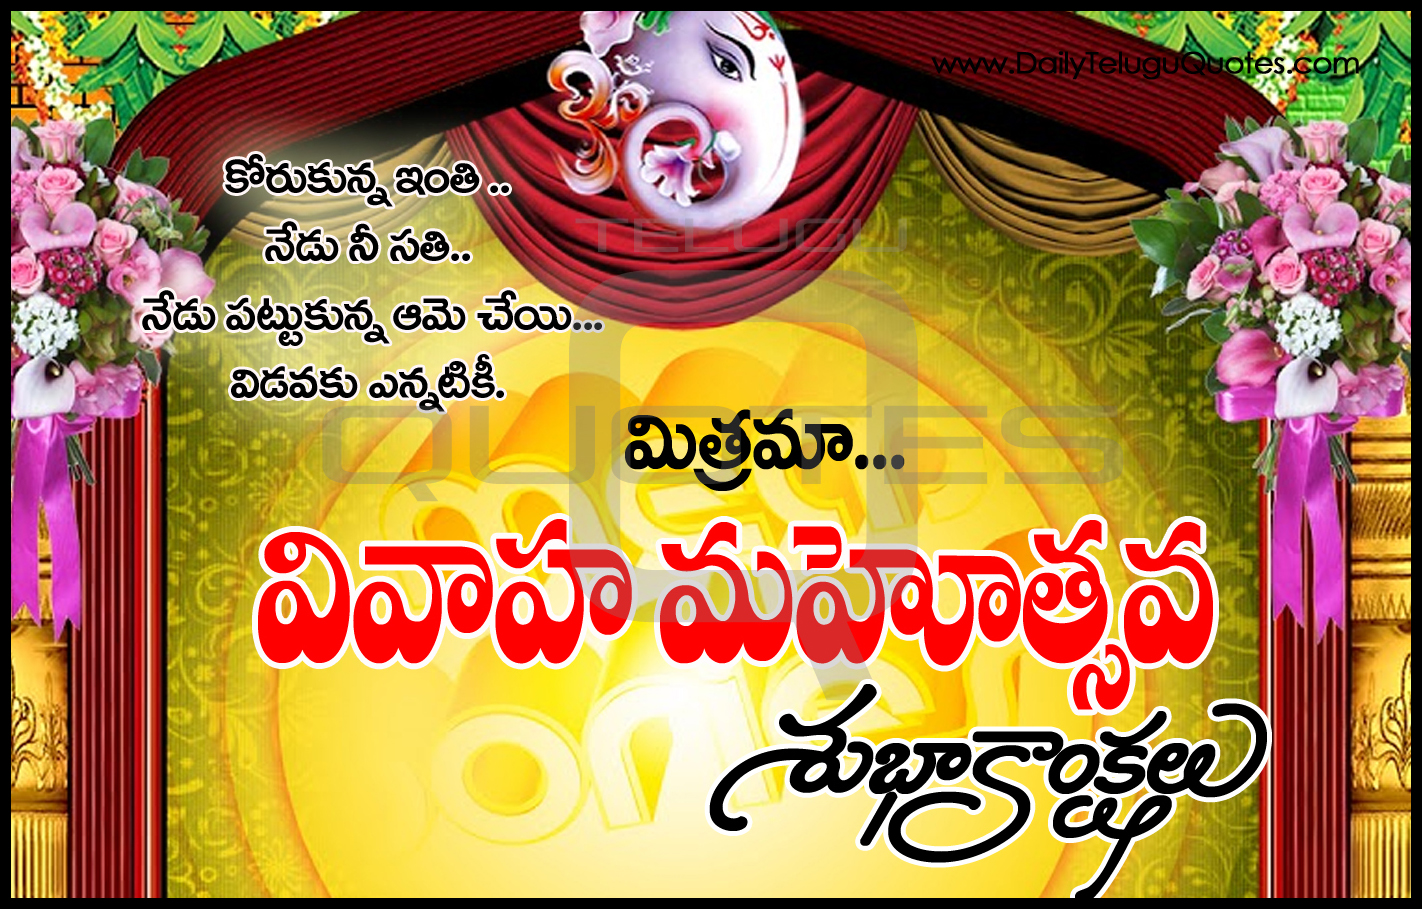 Telugu Quotes Pelliroju Subhakamkshalu Images Life Memorable